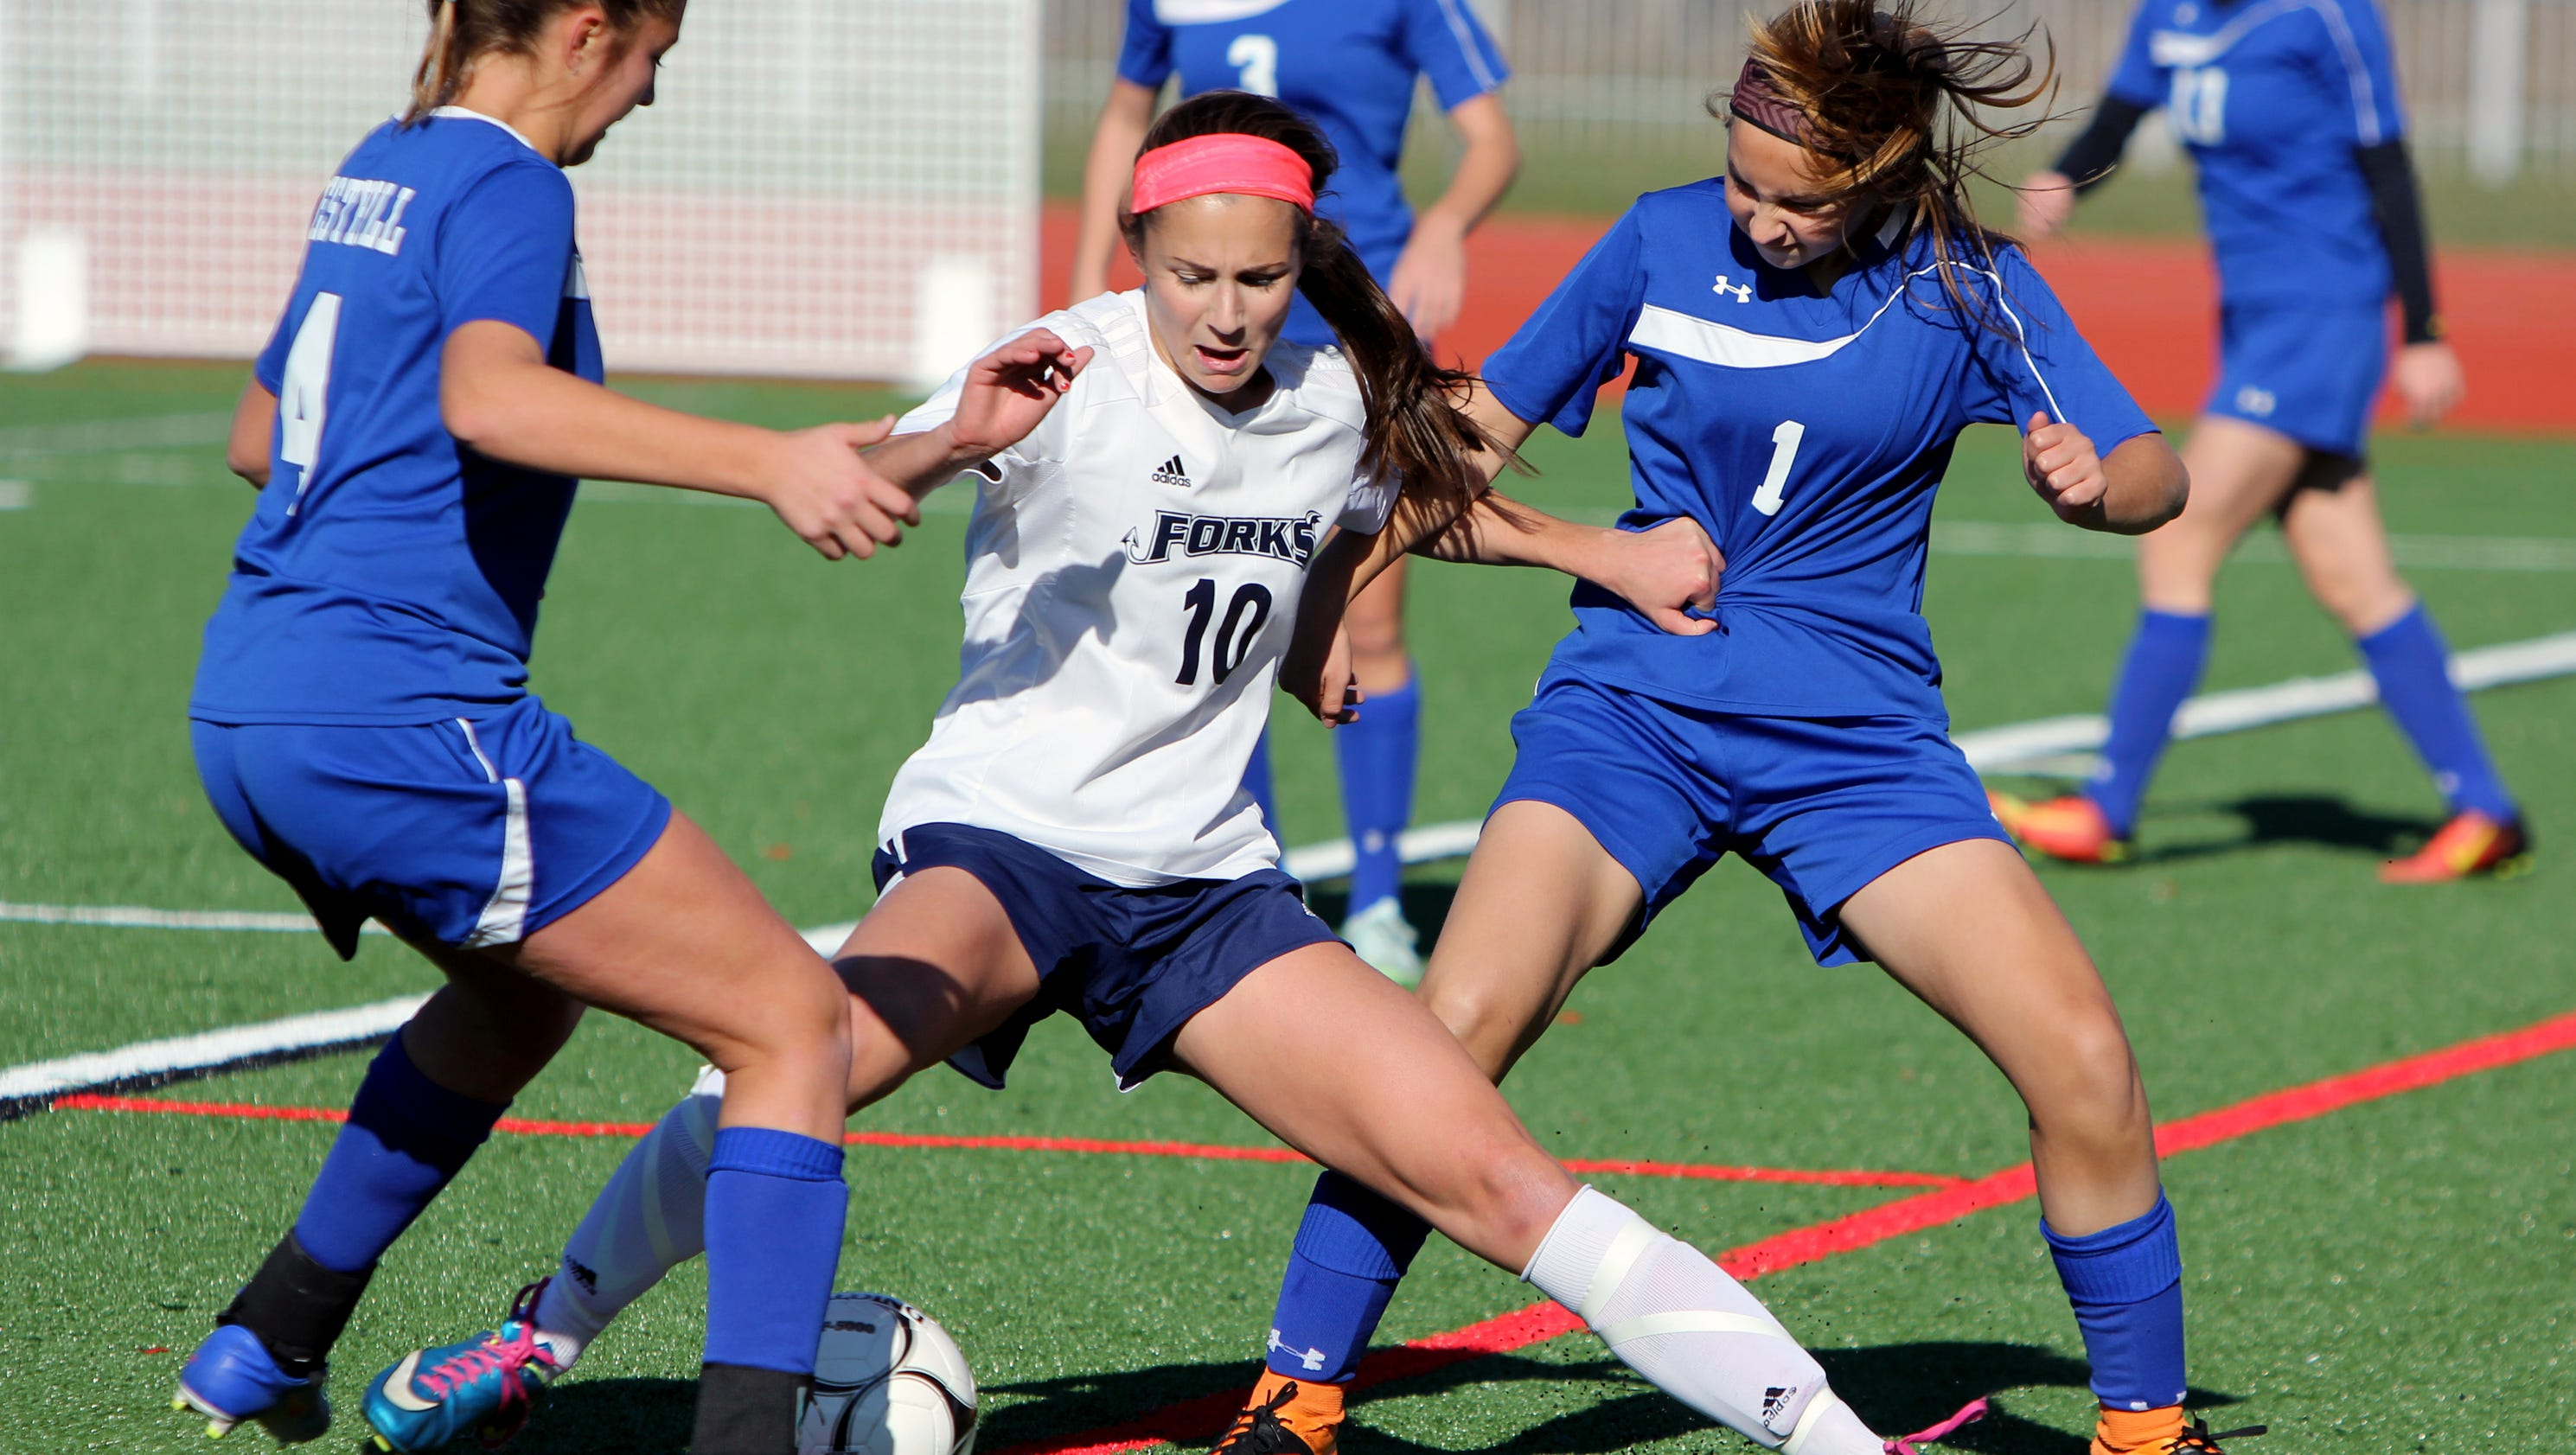 forks girls The alexandria girls soccer team had to balance the excitement of a new season  with the disappointment of a late, 3-2 loss to east grand forks.